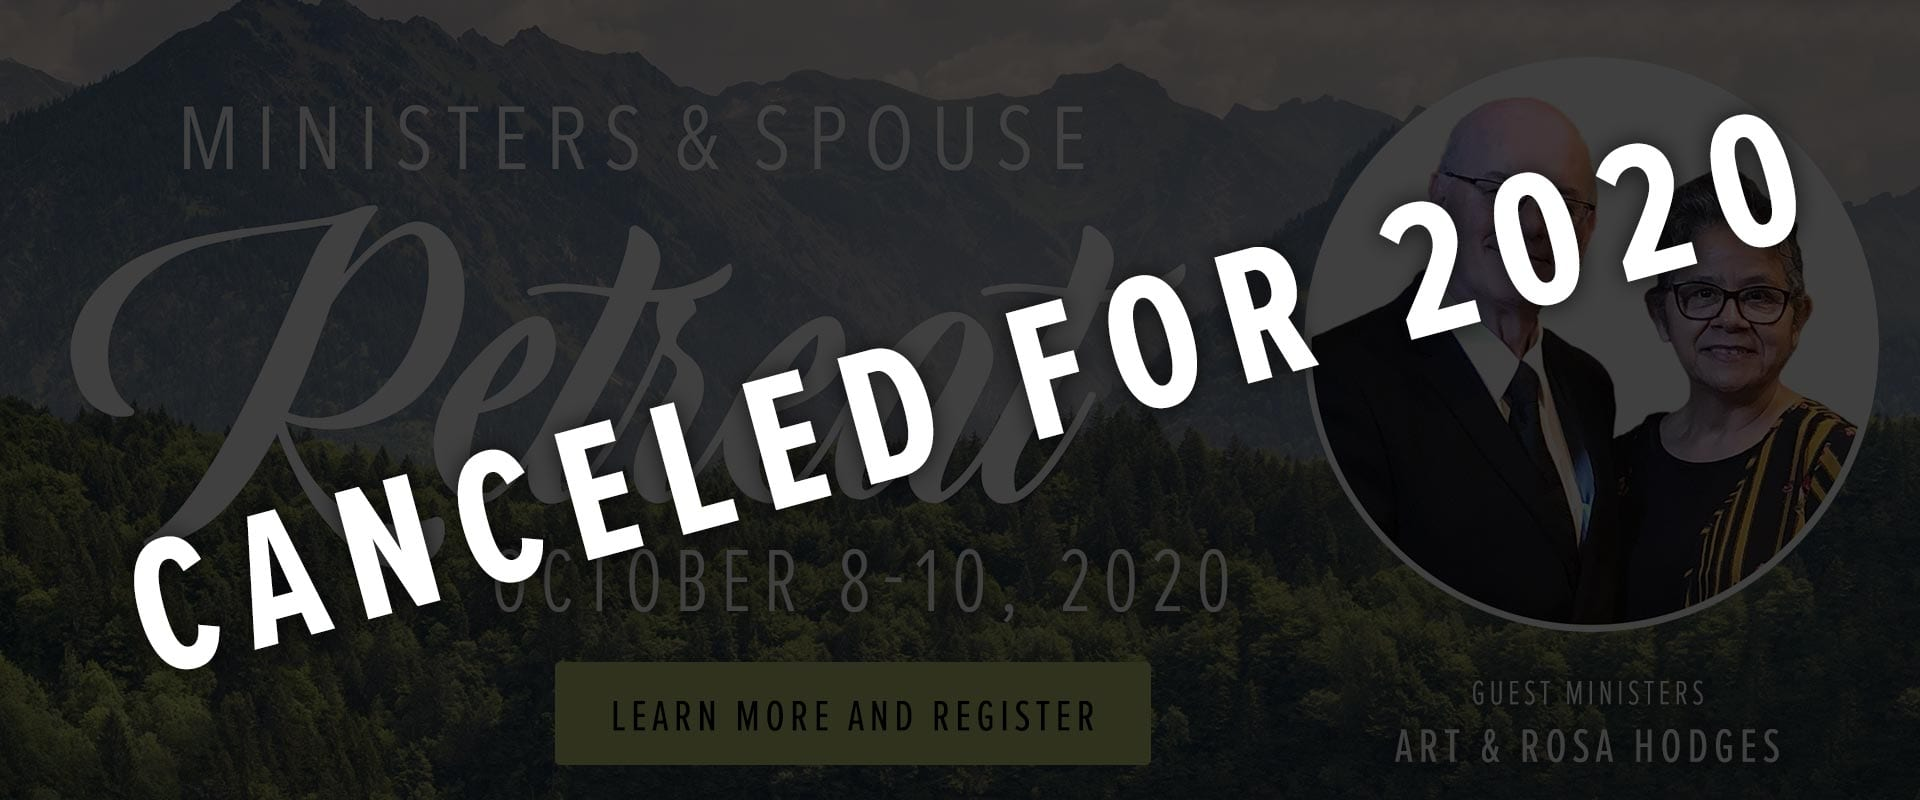 minister-spouse-retreat-2020-cancel